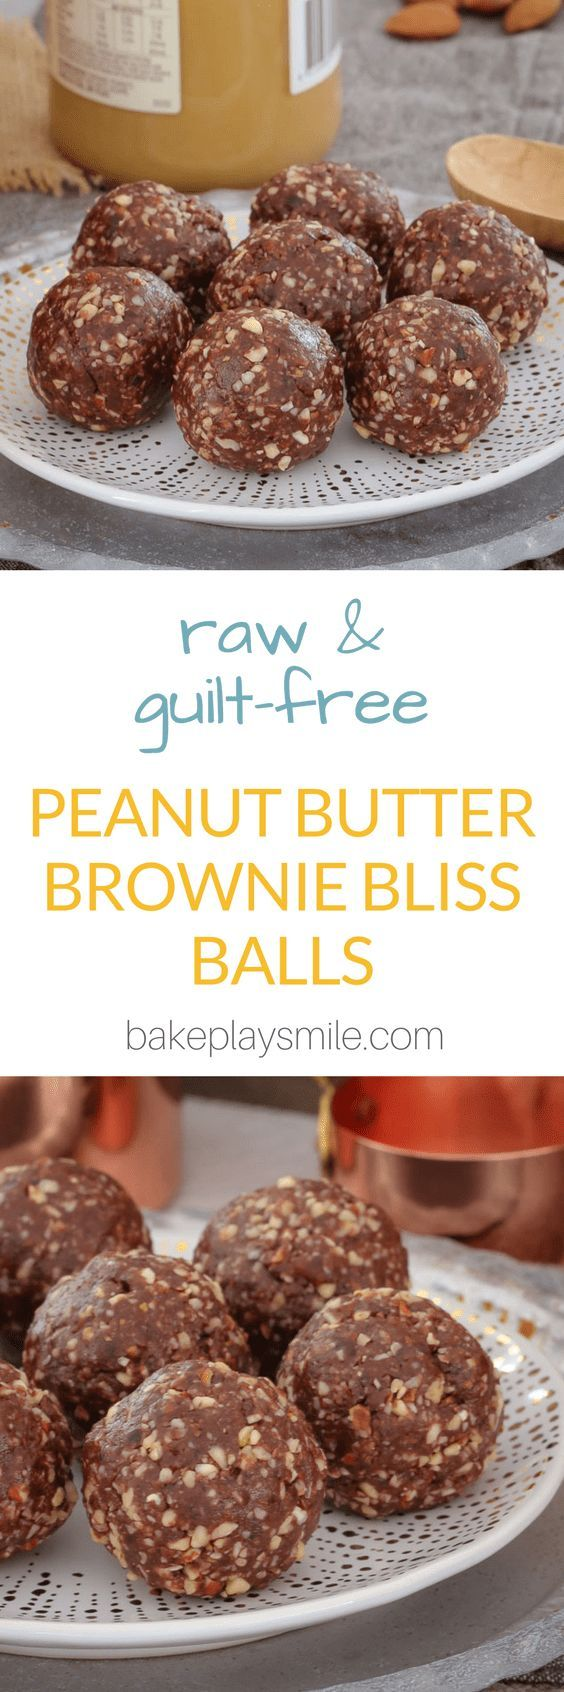 These Raw & Guilt-Free Peanut Butter Brownie Bliss Balls are the perfect healthy treat�� but best of all�� they taste super naughty! #bliss #balls #healthy #raw #peanutbutter #recipe #thermomix #conventional #nut #chocolate #brownie #best